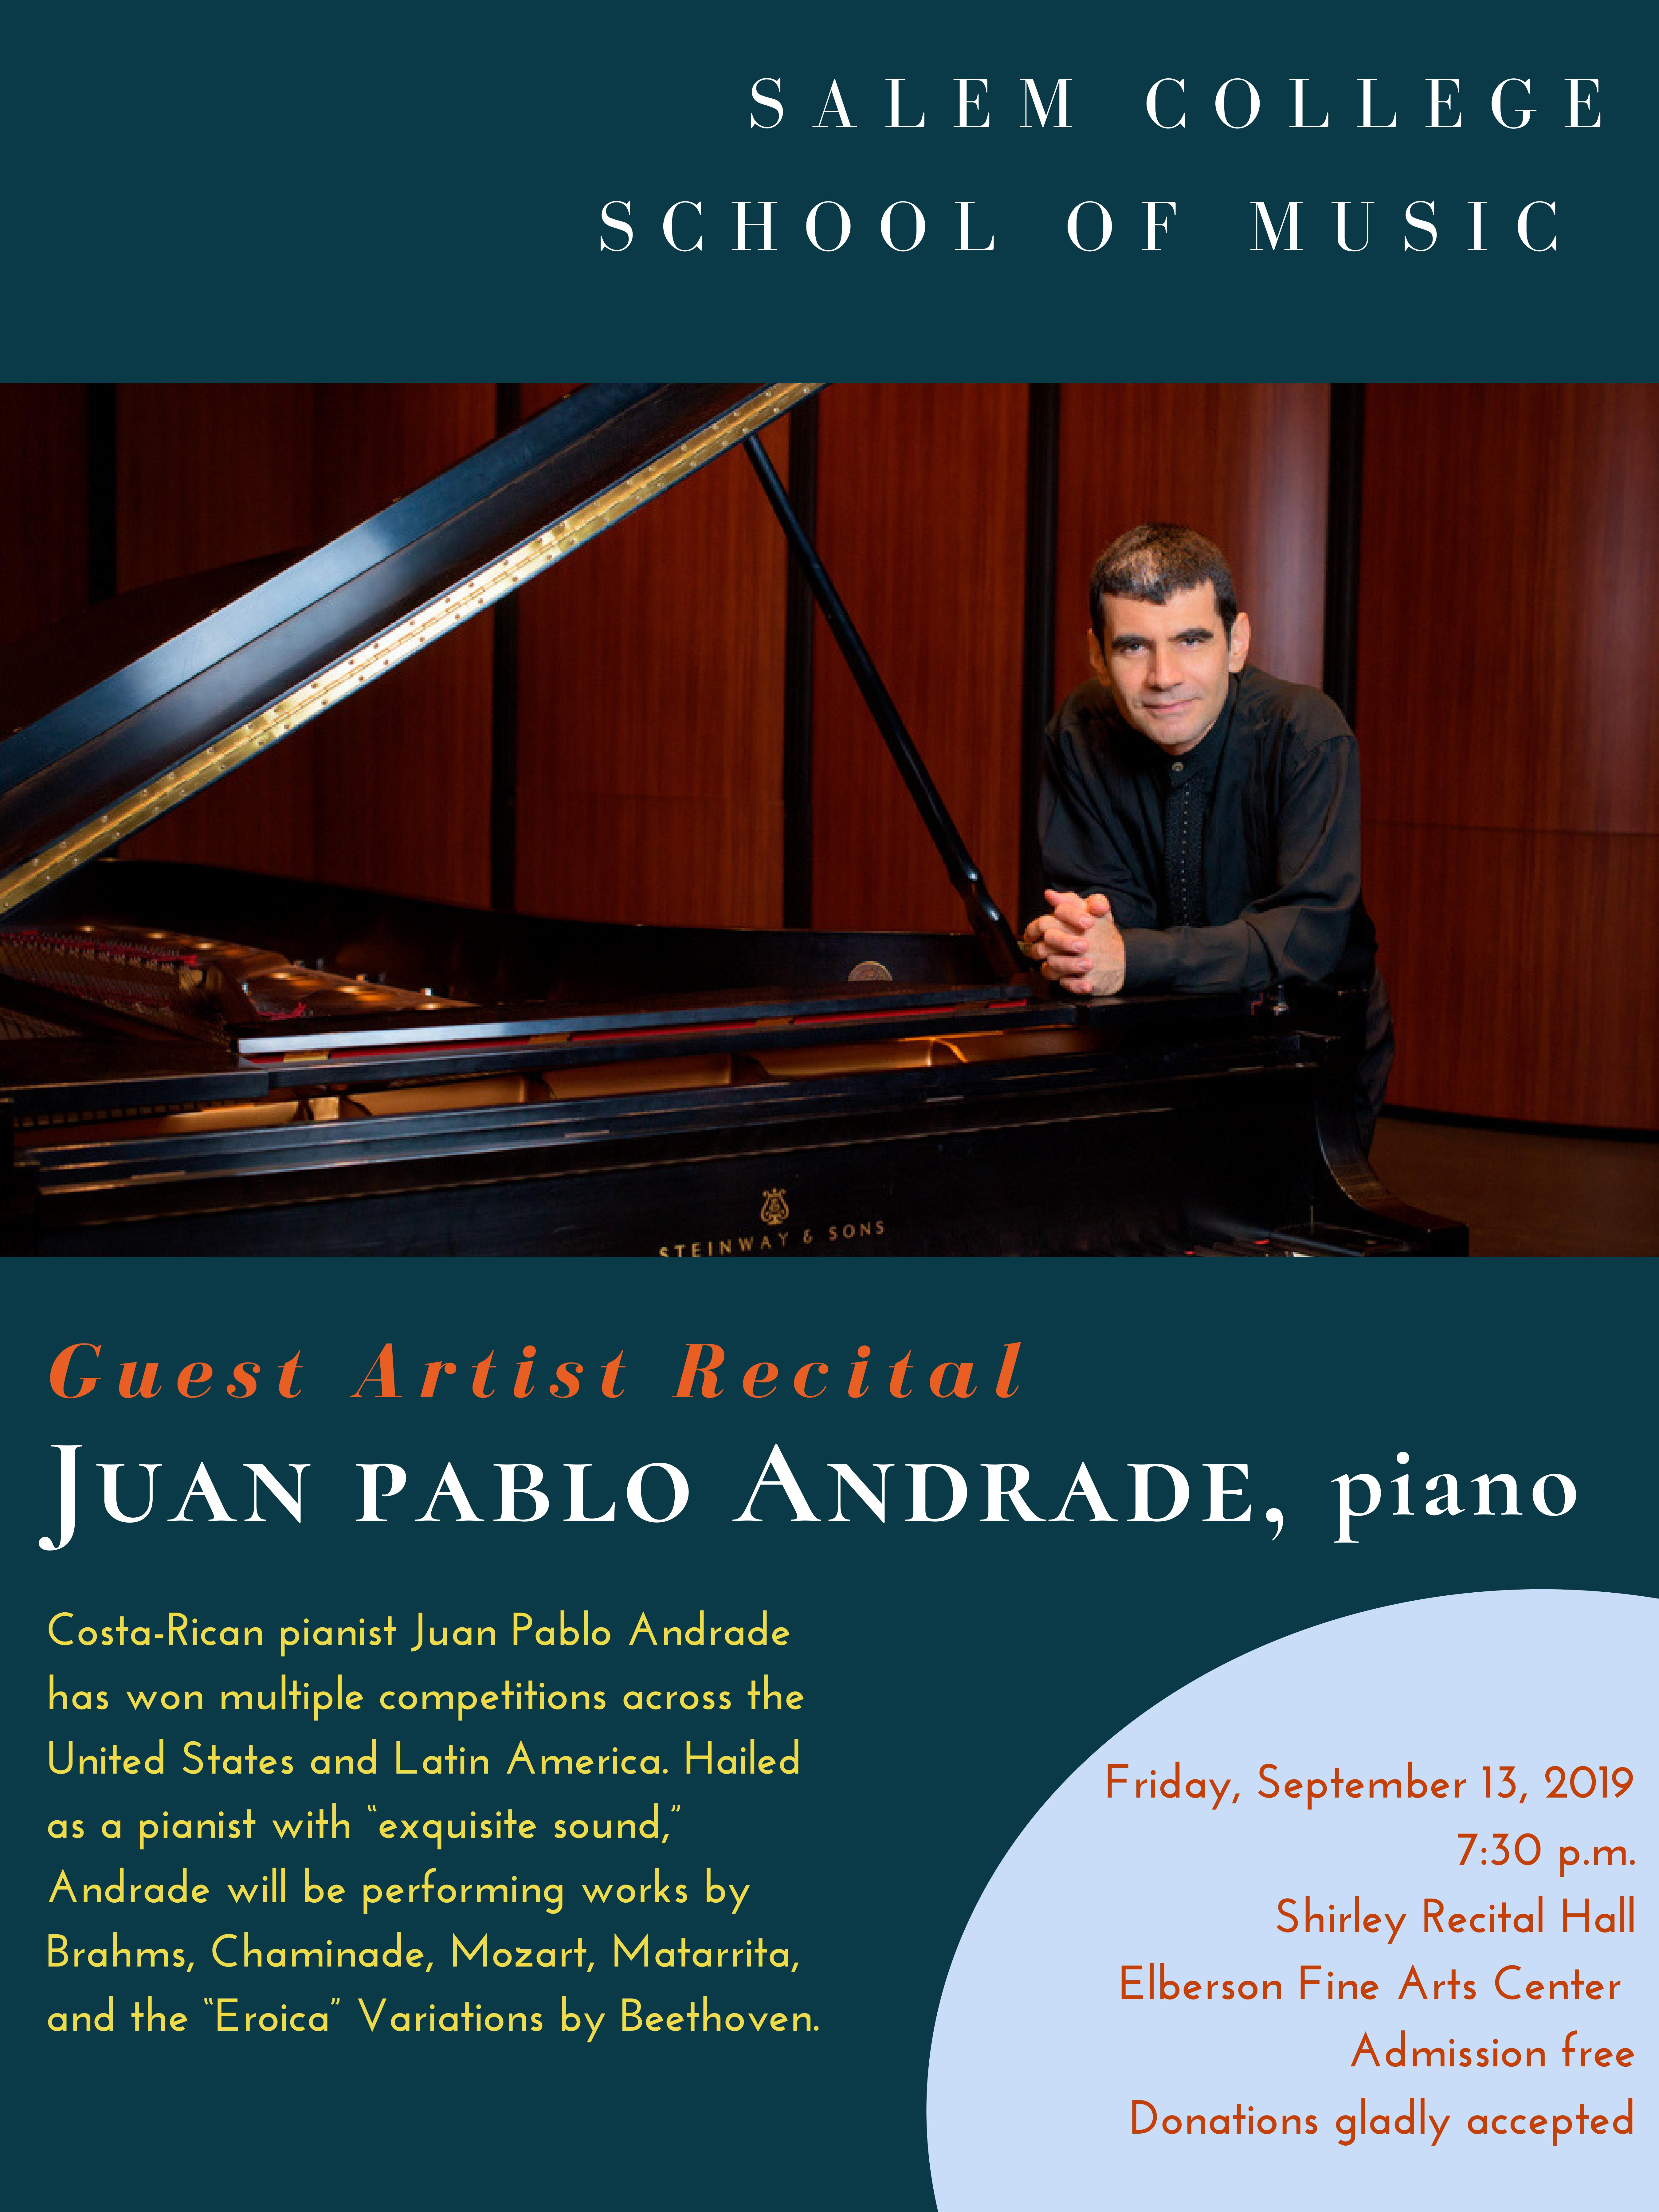 Juan Pablo Adrade, piano guest artist flyer, details on page